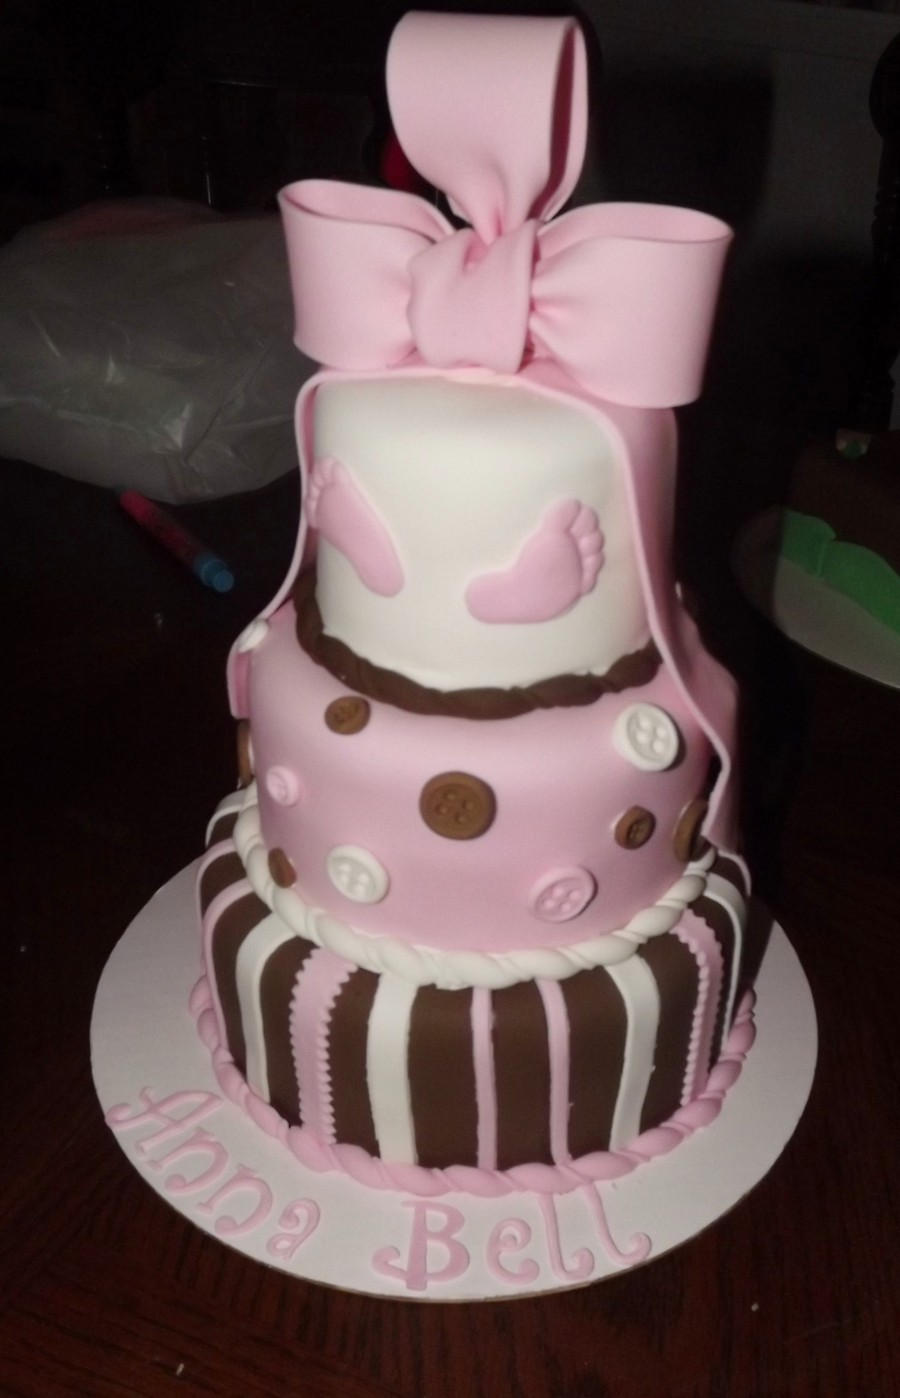 Ribbons And Bows (A Small Version) on Cake Central